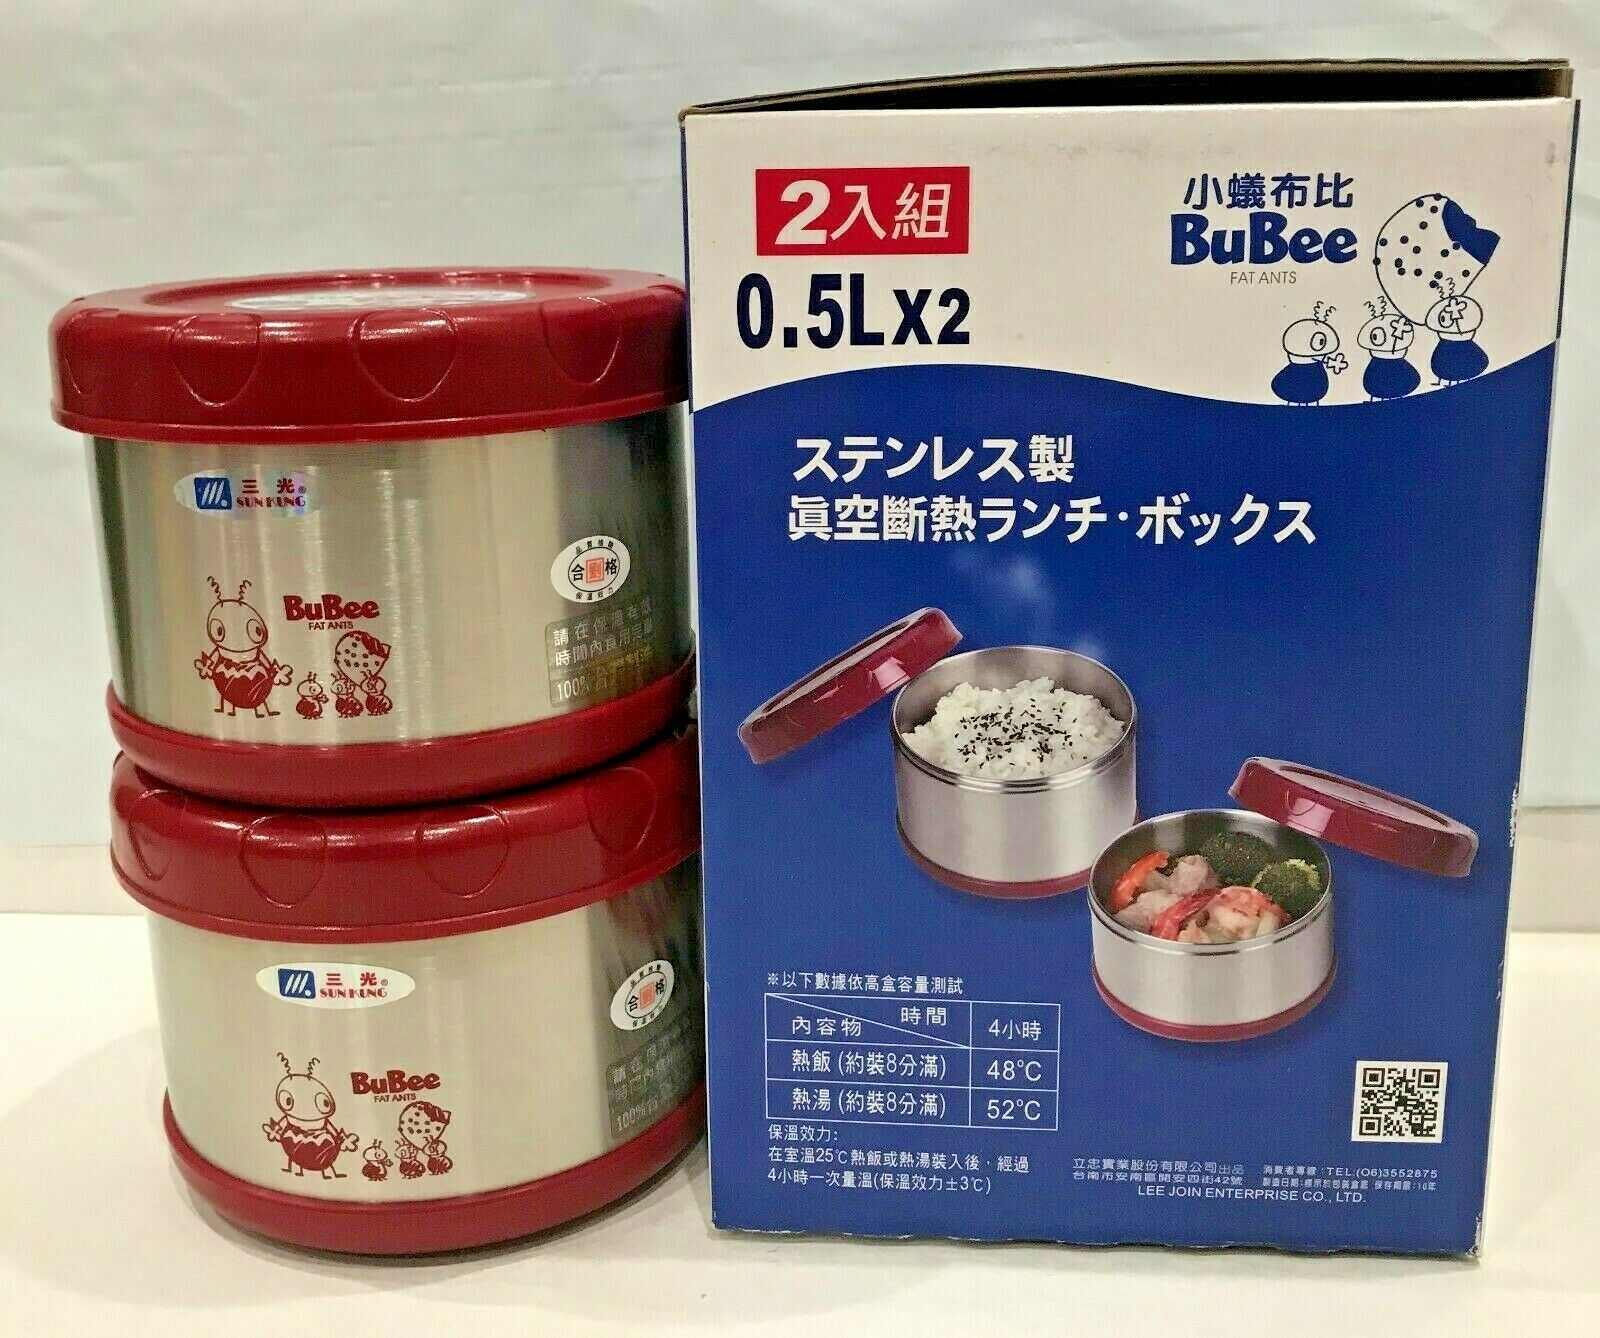 BuBee Two Layers Stainless Steel Vaccum Lunch Jar Box 0.5L x 2 -K1000B